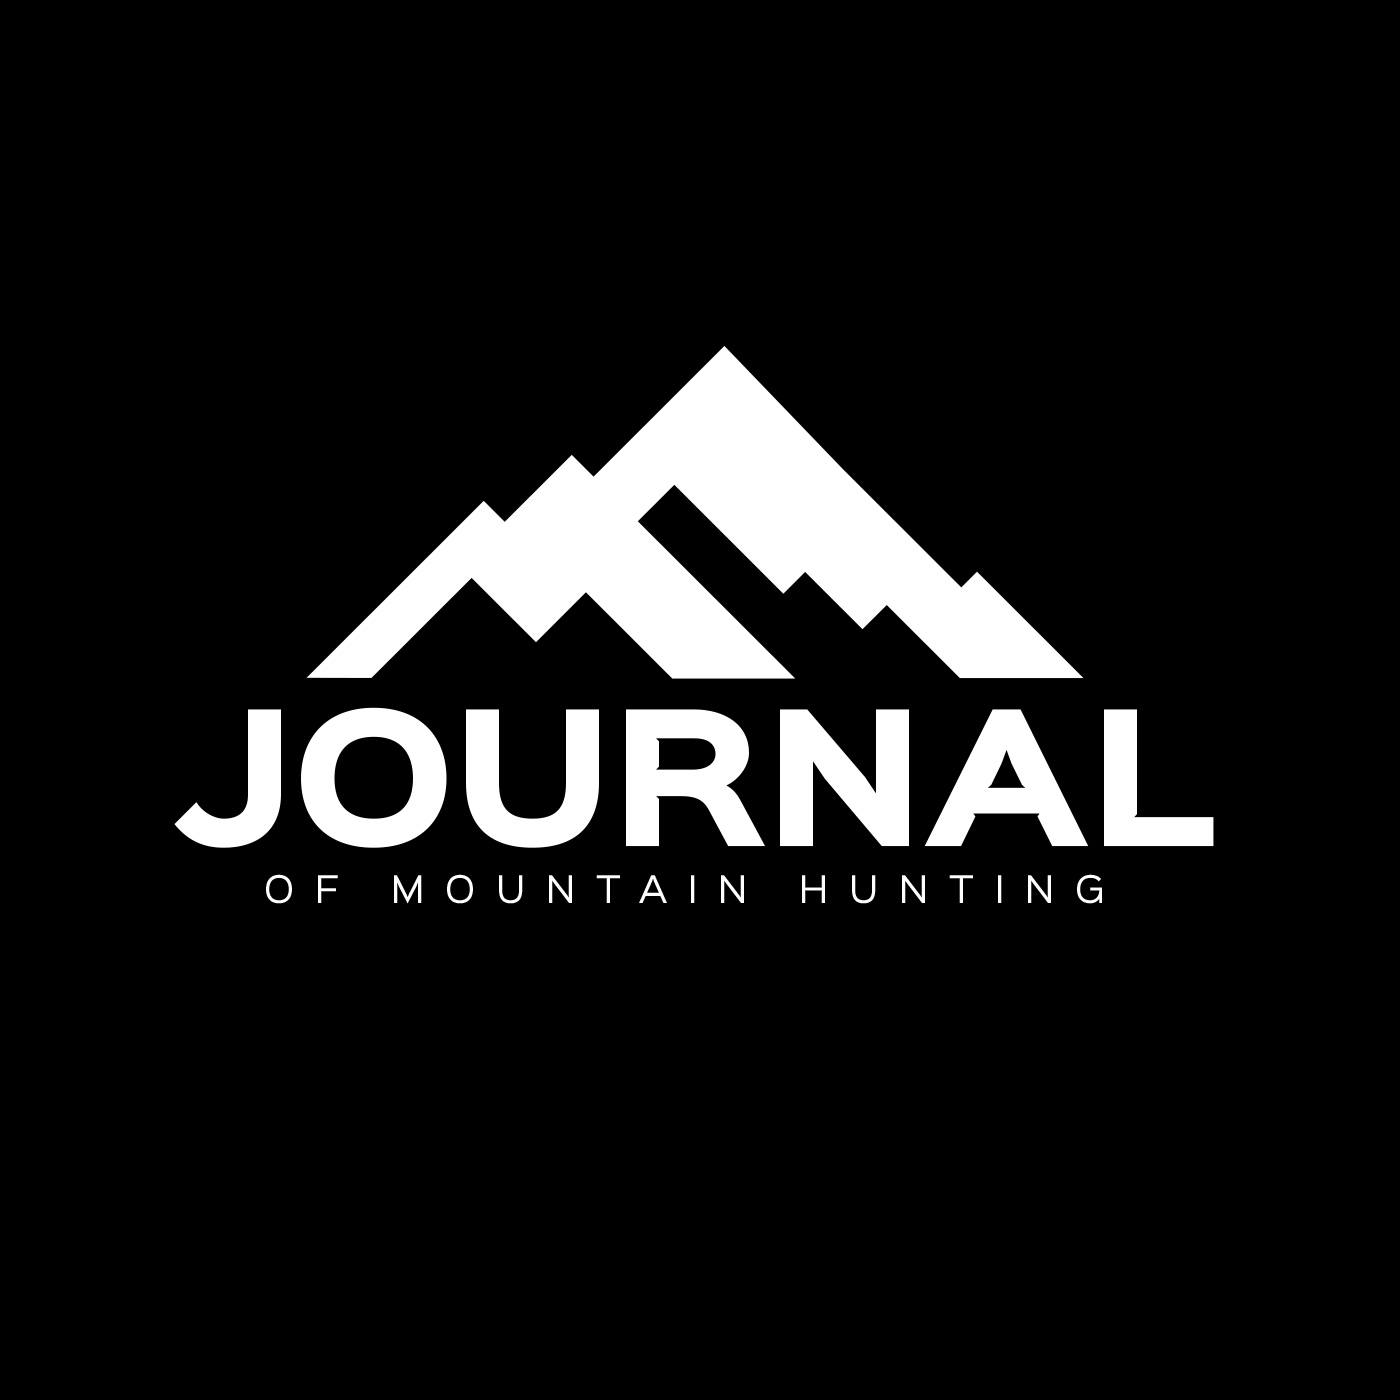 The Journal of Mountain Hunting - Bridging the Gap - After a few discussions with Adam Janke from The Journal of Mountain Hunting, he asked me to elaborate on the idea of bridging the gap between the hunting community and the general hiking populous.